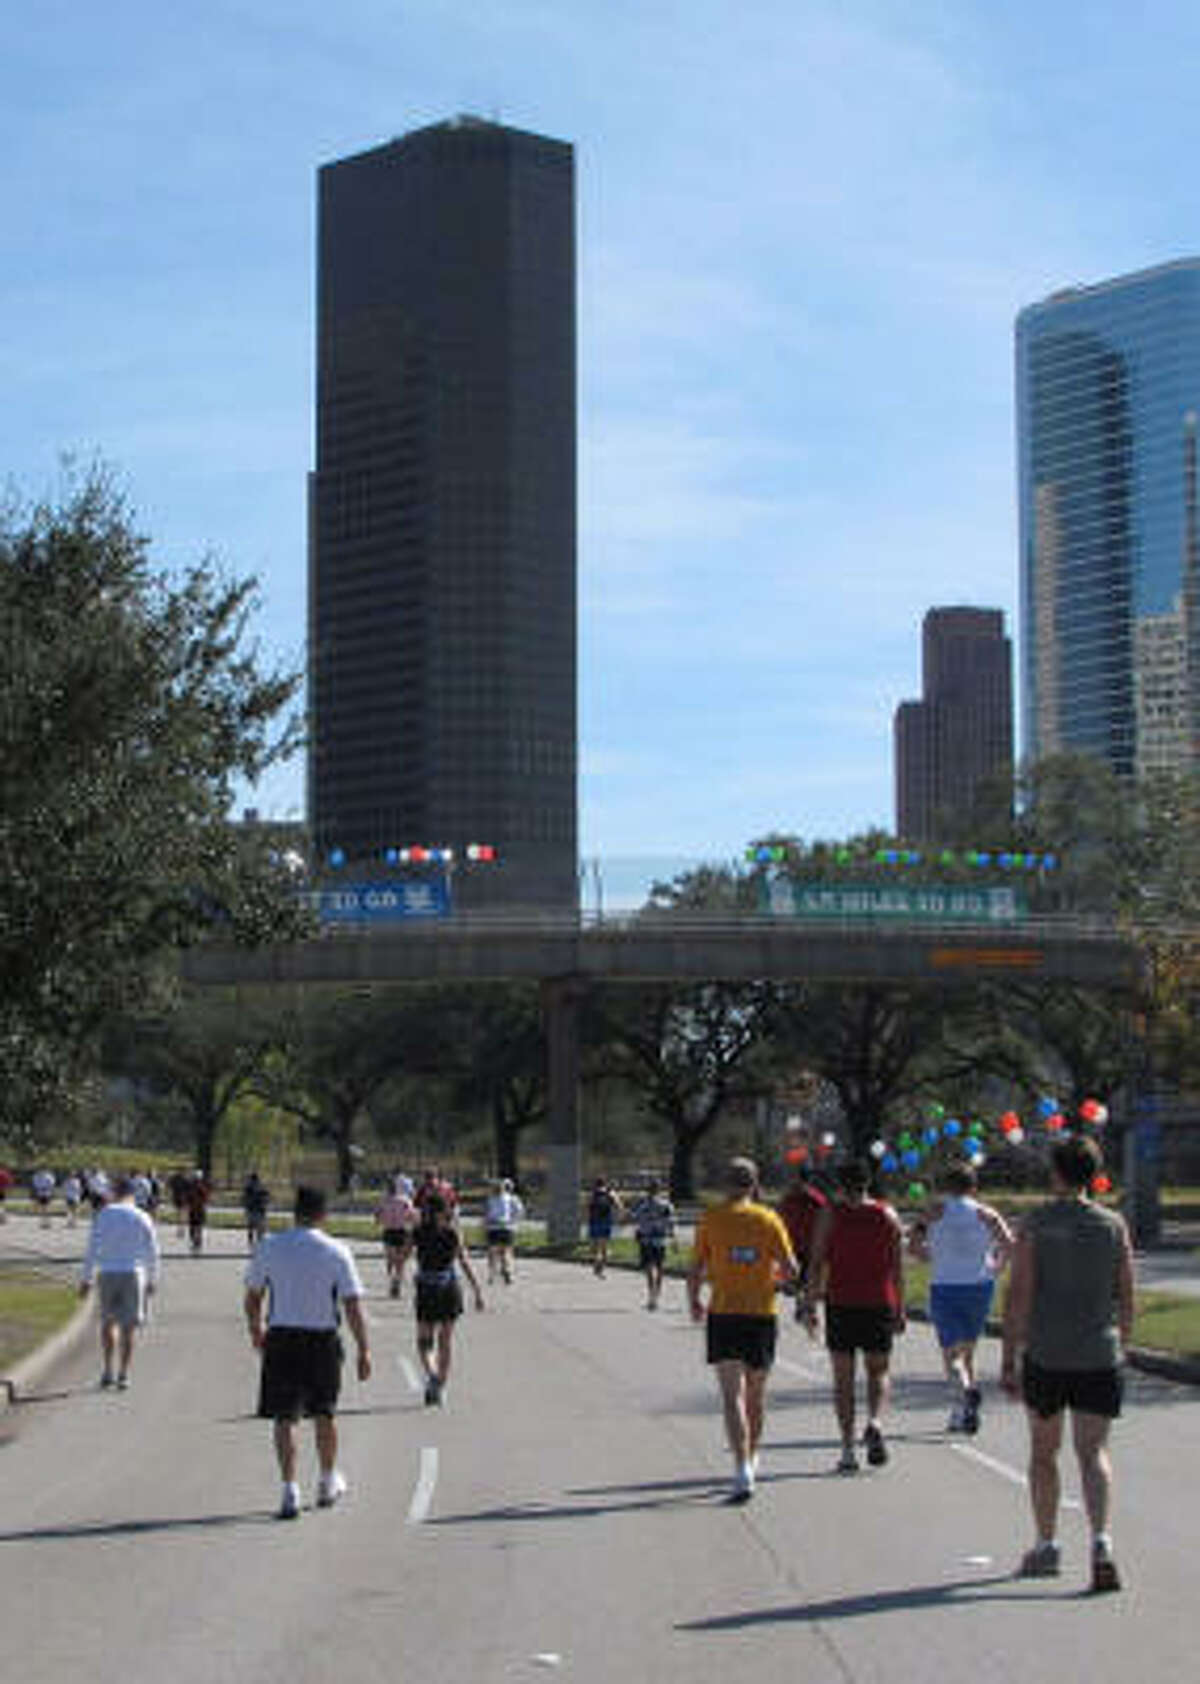 The race offered skyline views, including this one from Allen Parkway. By this point, a mile and a half from the finish line, many participants have slowed their pace.